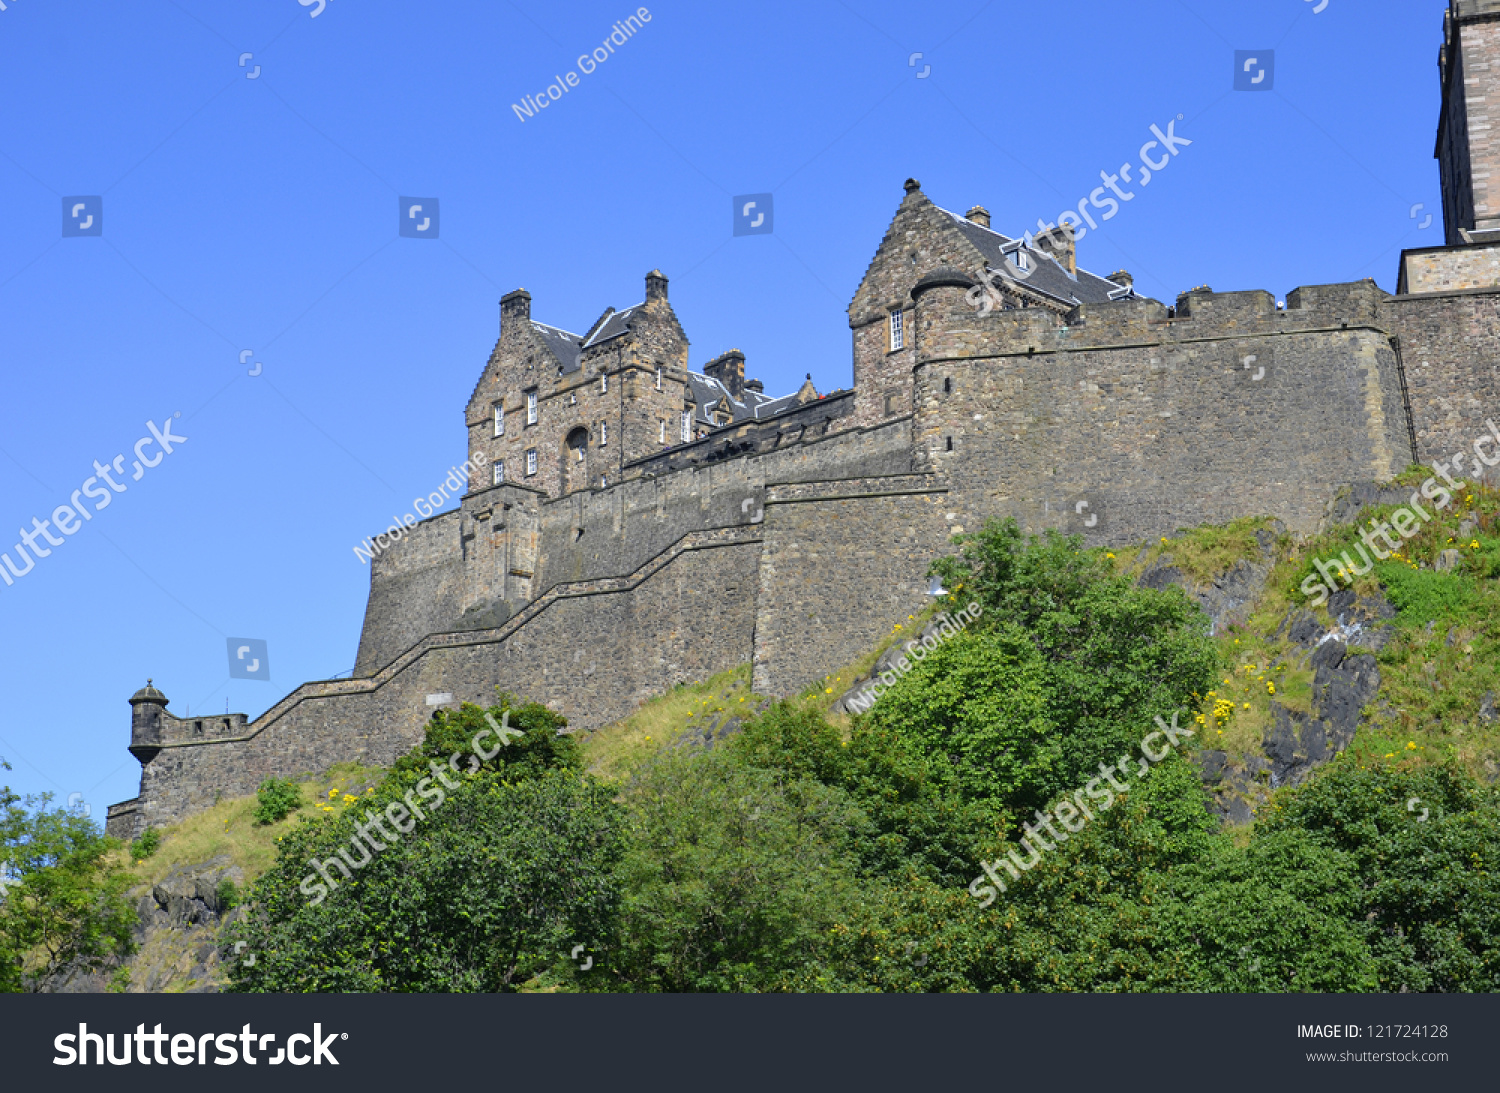 stock edinburgh castle - photo #6